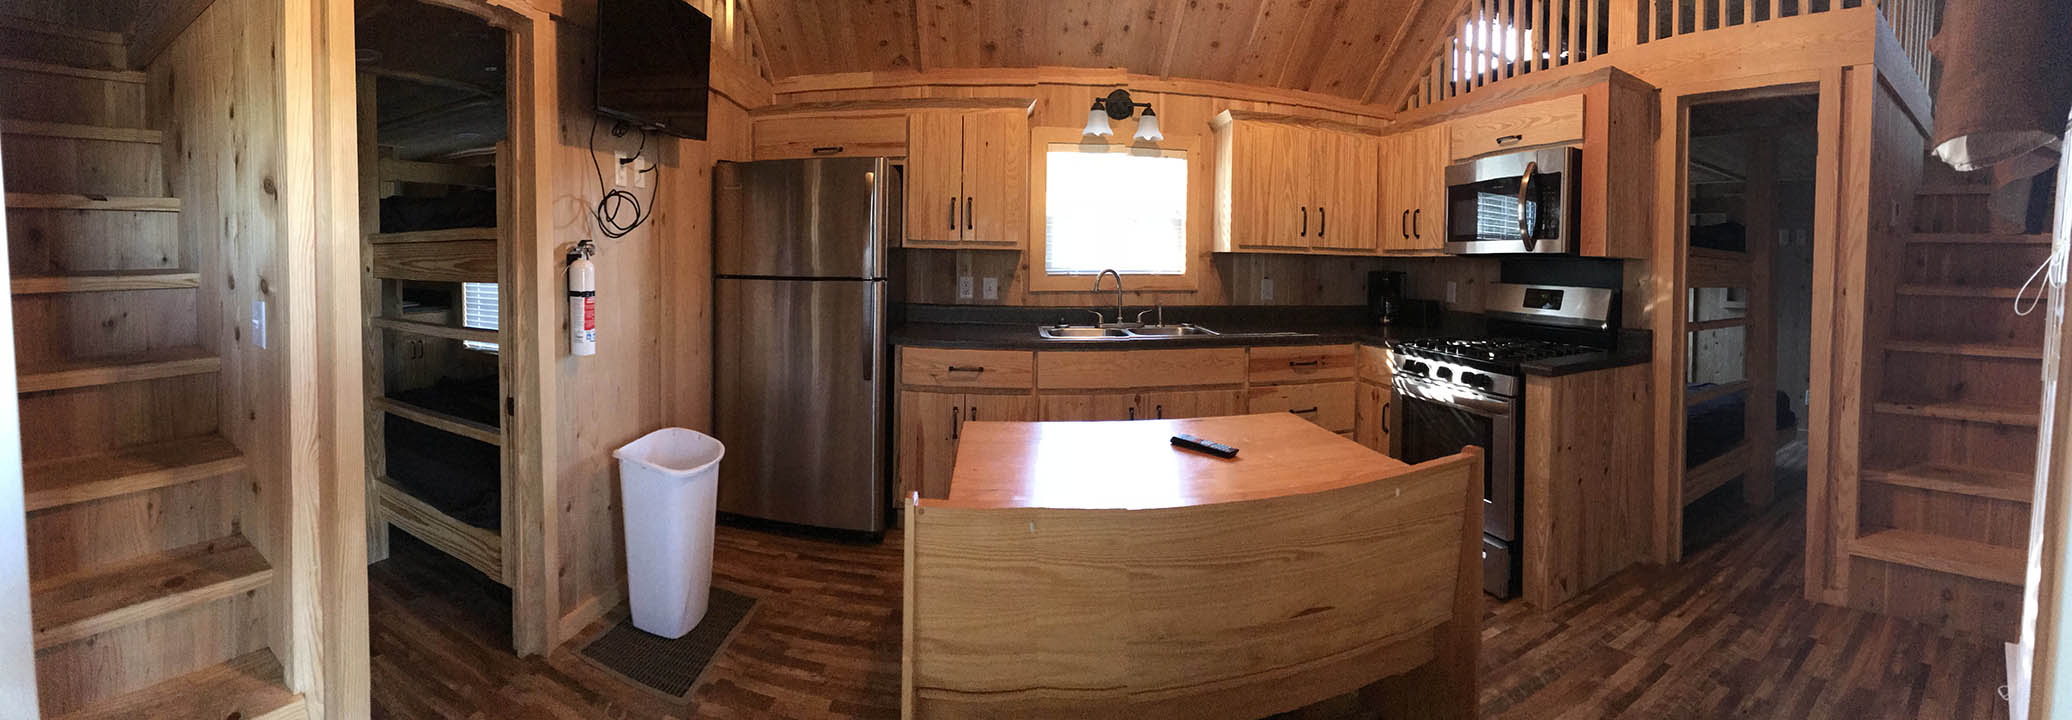 Family Lodge - Panoramic photo of kitchen area